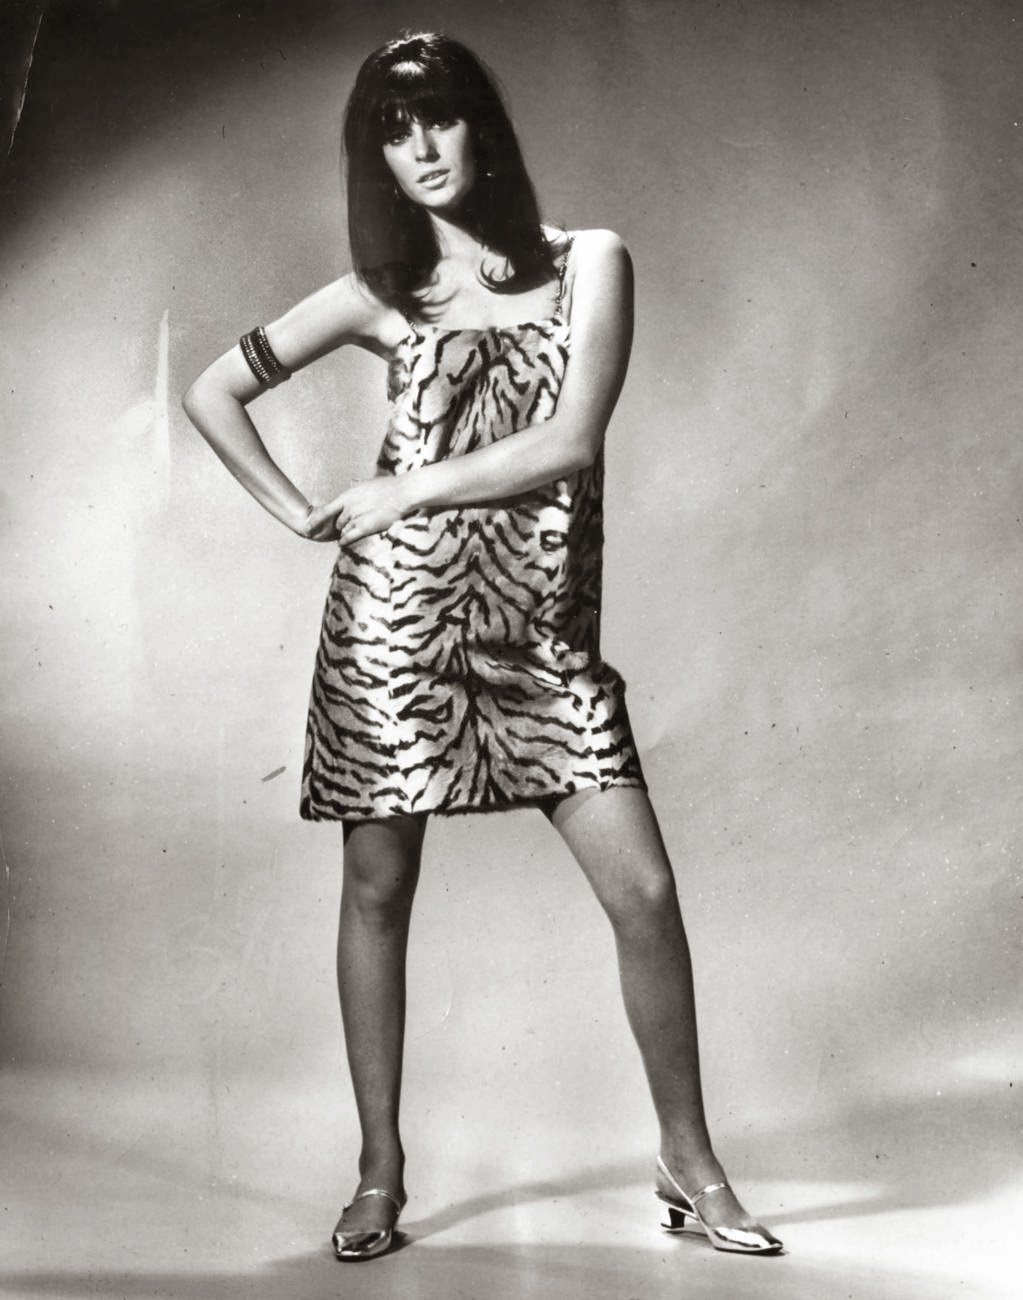 women in miniskirts in the 1960s vintage everyday